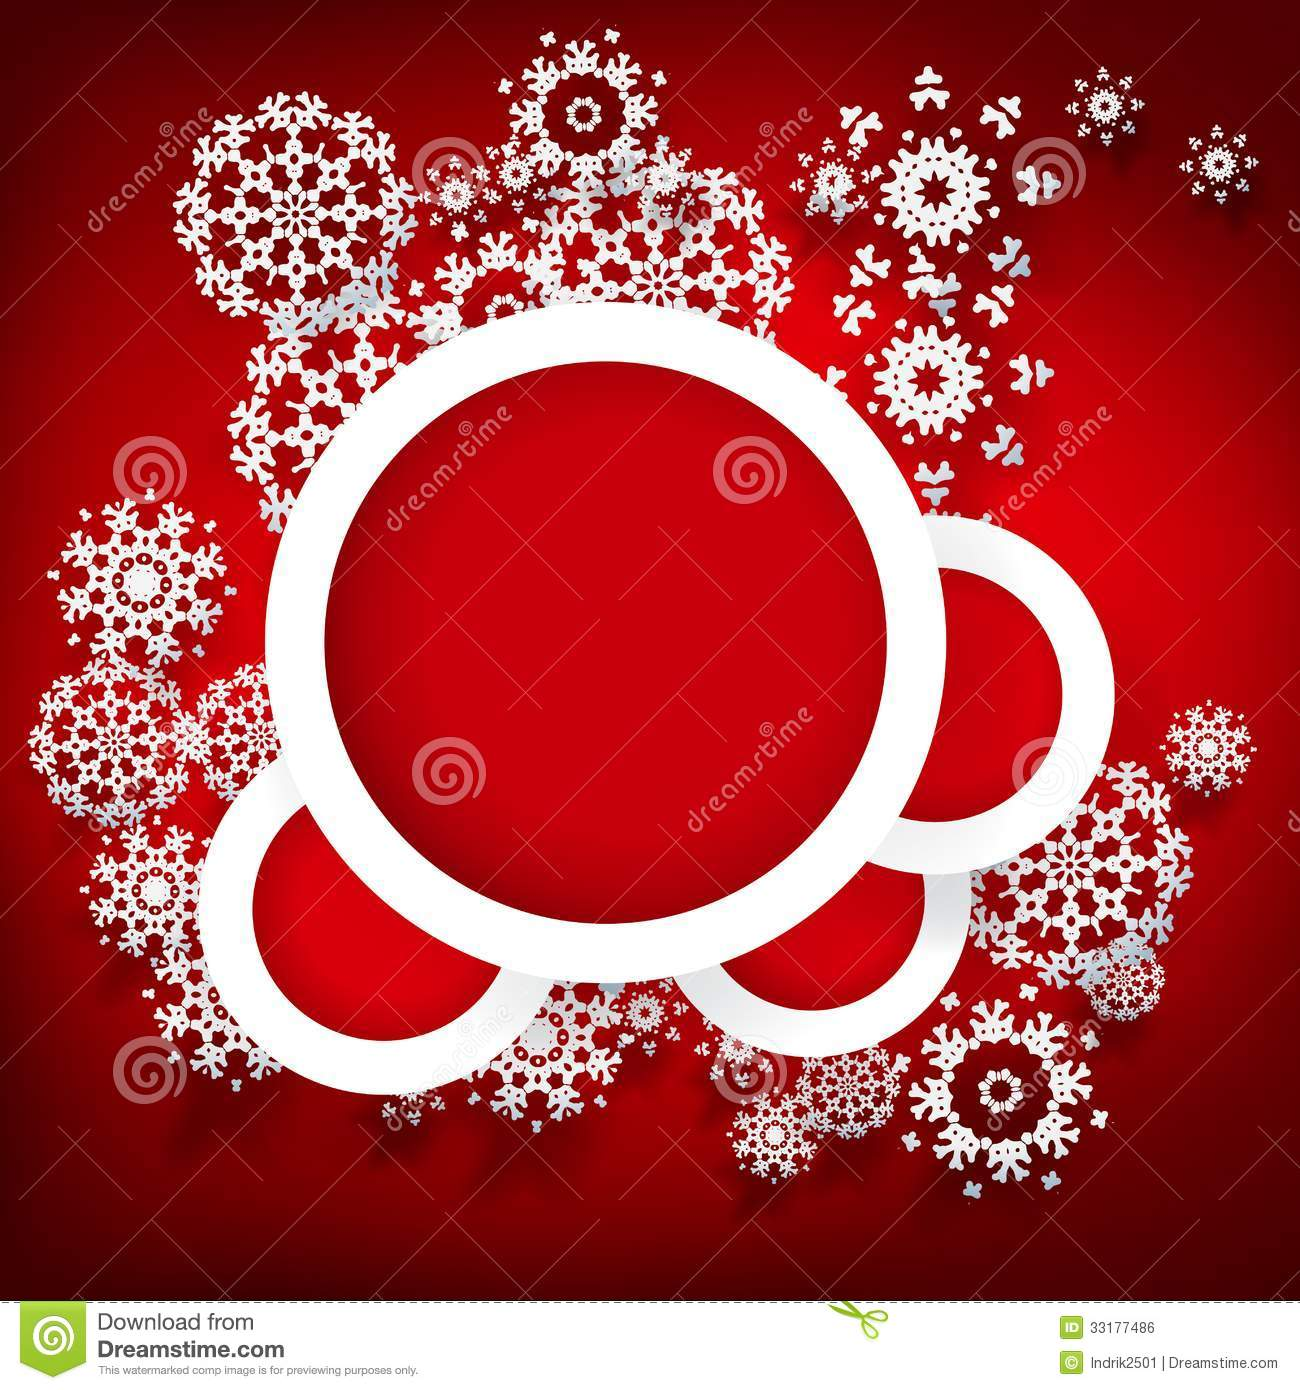 red christmas design with space for text. royalty free stock image